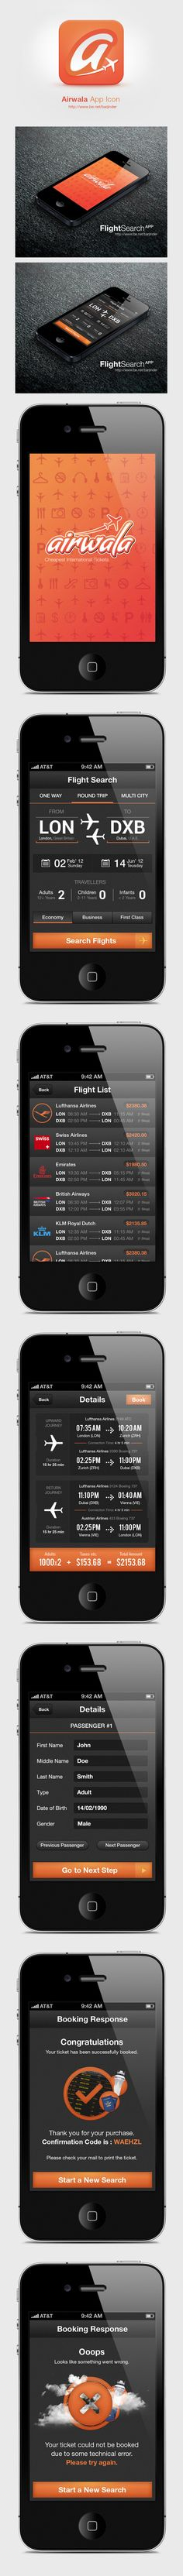 Flight Search App -